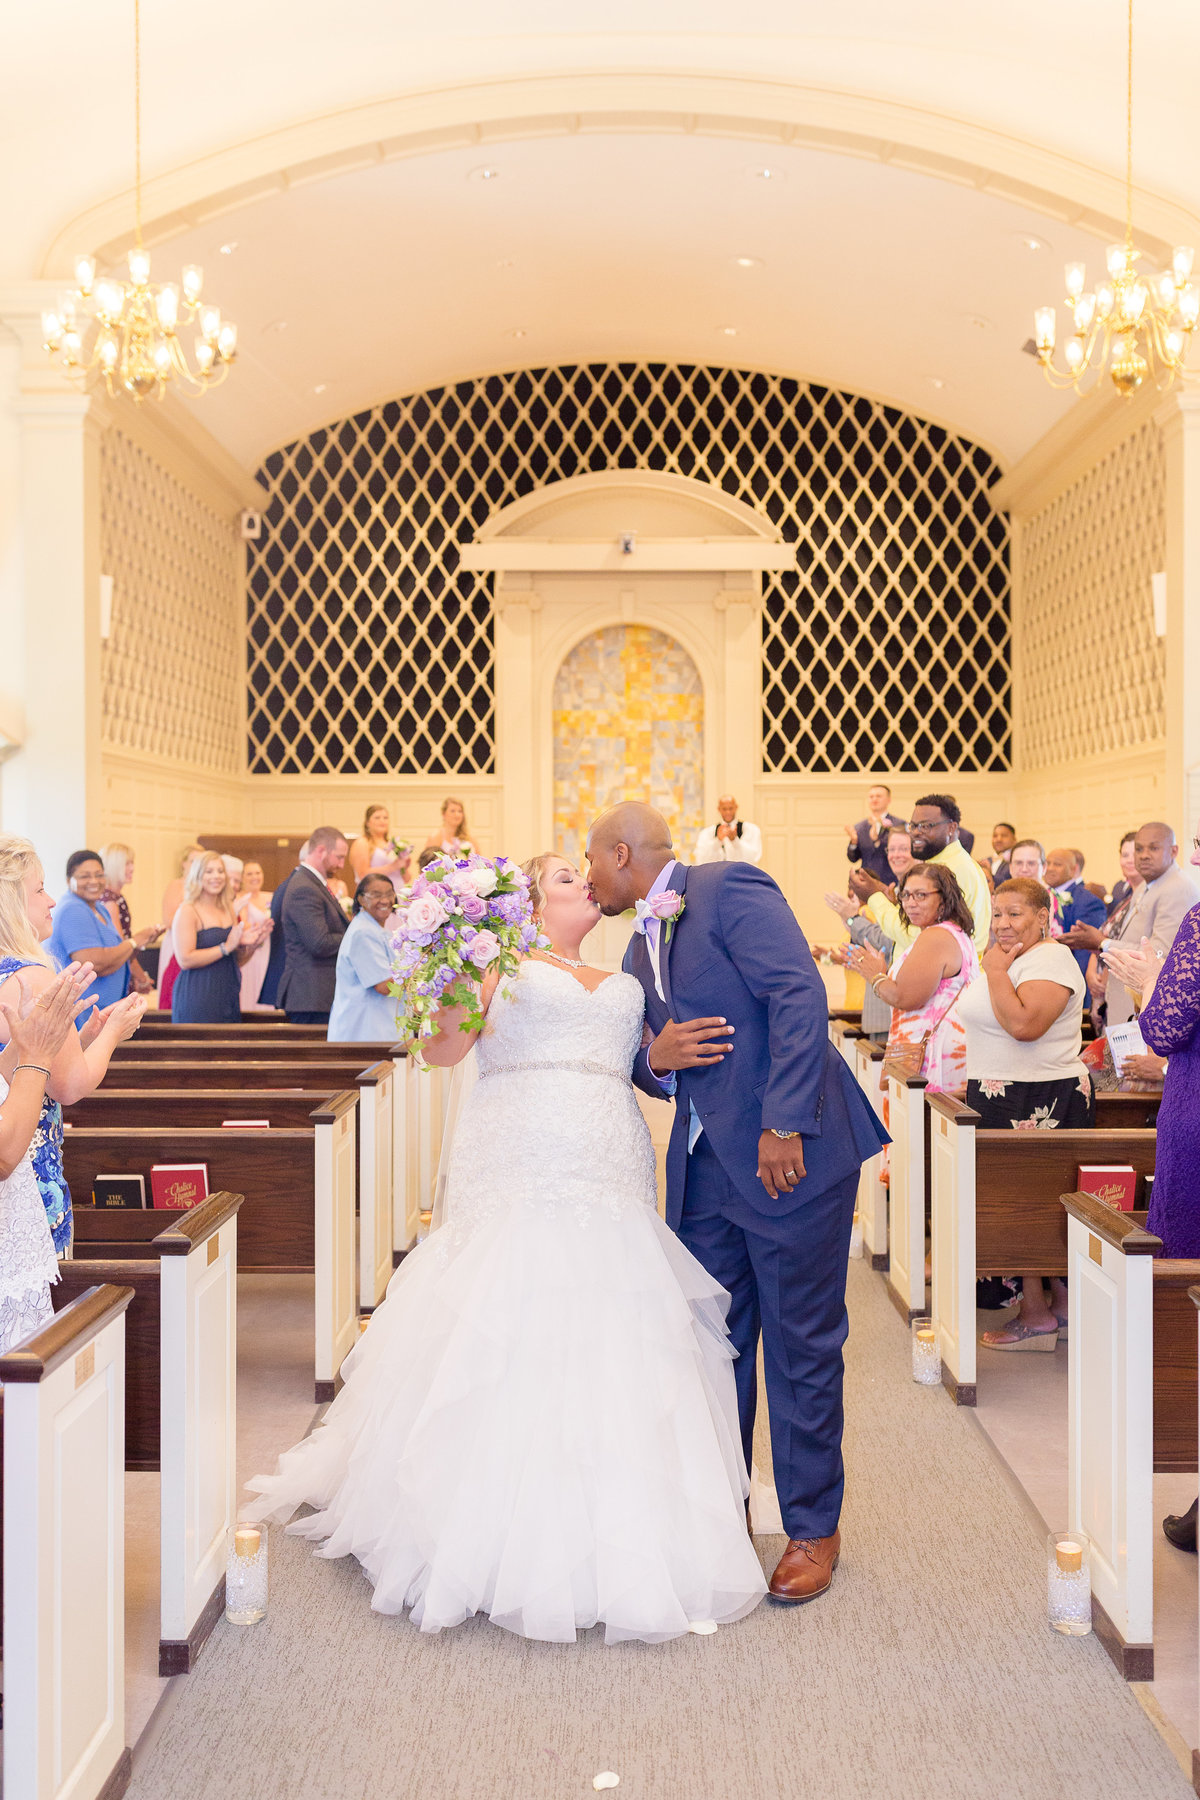 Kara aLynchburg Virginia Wedding Photographernd Jawaad66